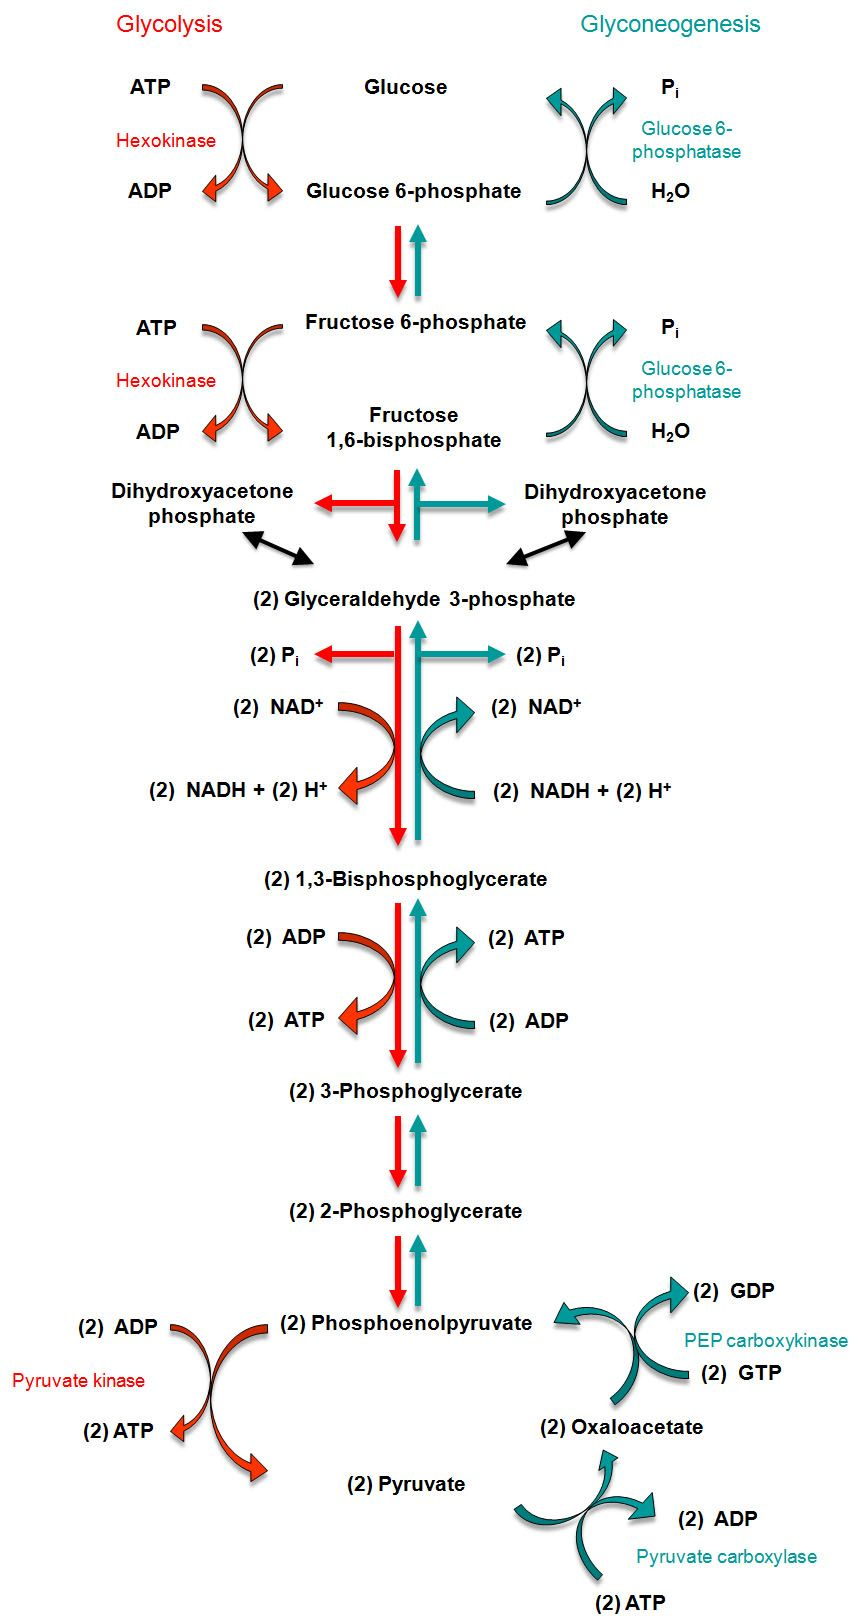 gluconeogenesis | Relationship between glycolysis and ...